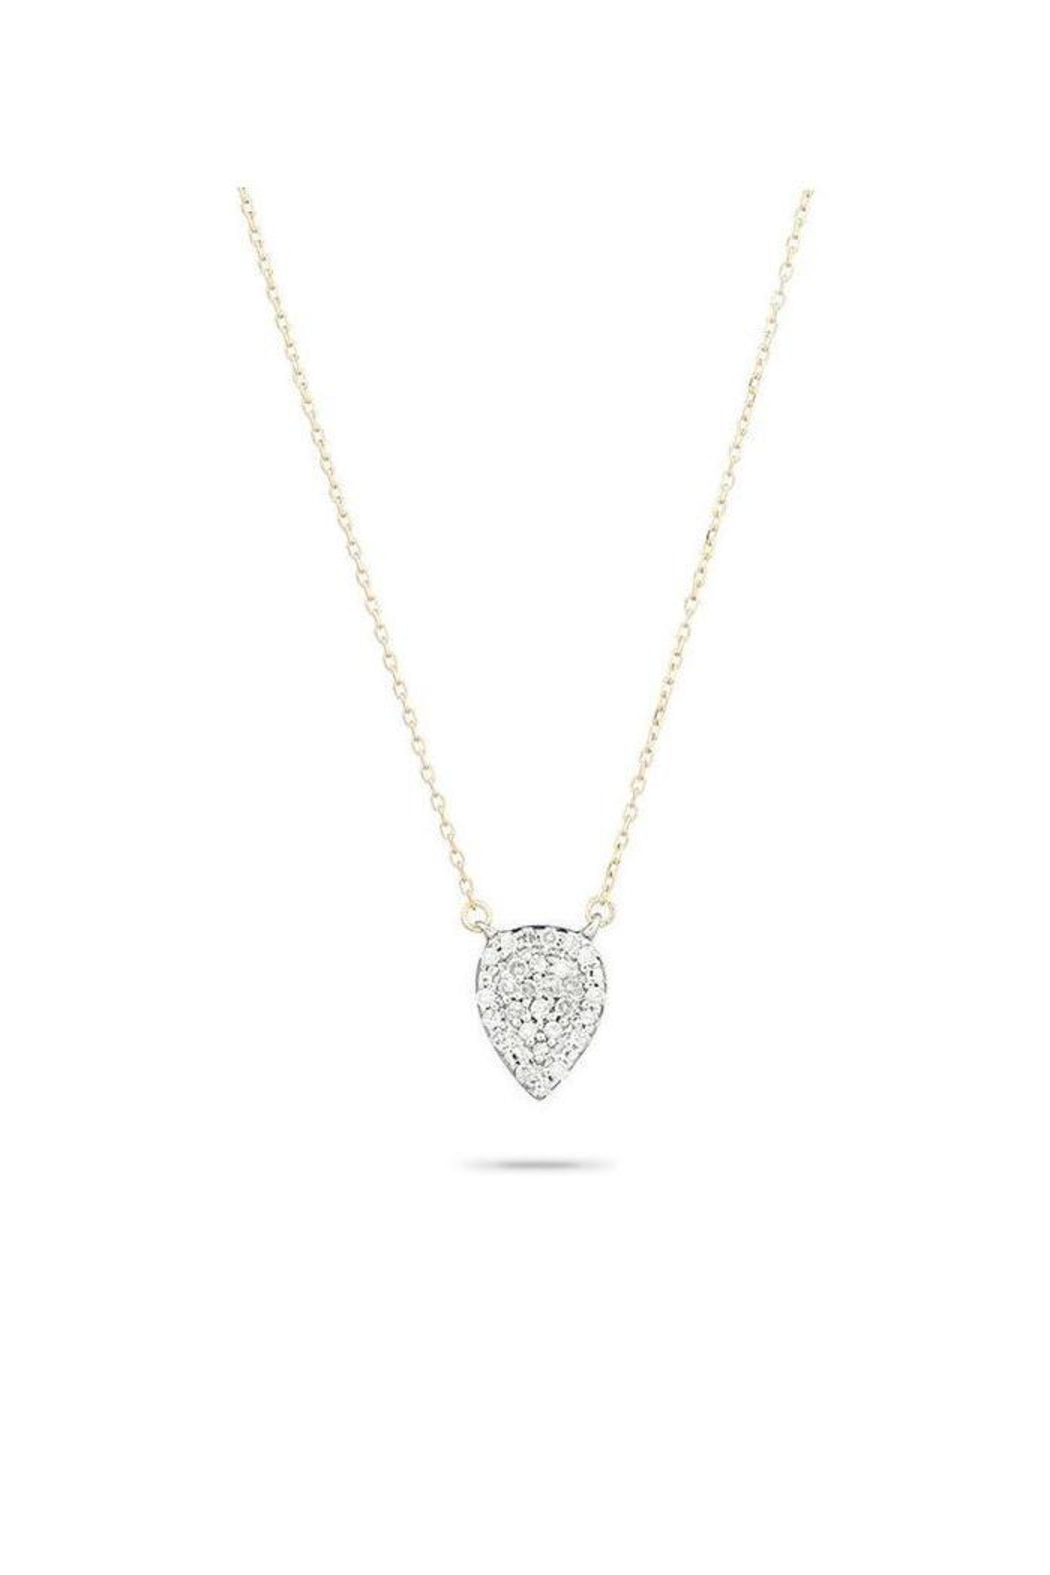 Adina Reyter Pave Teardrop Necklace - Front Cropped Image